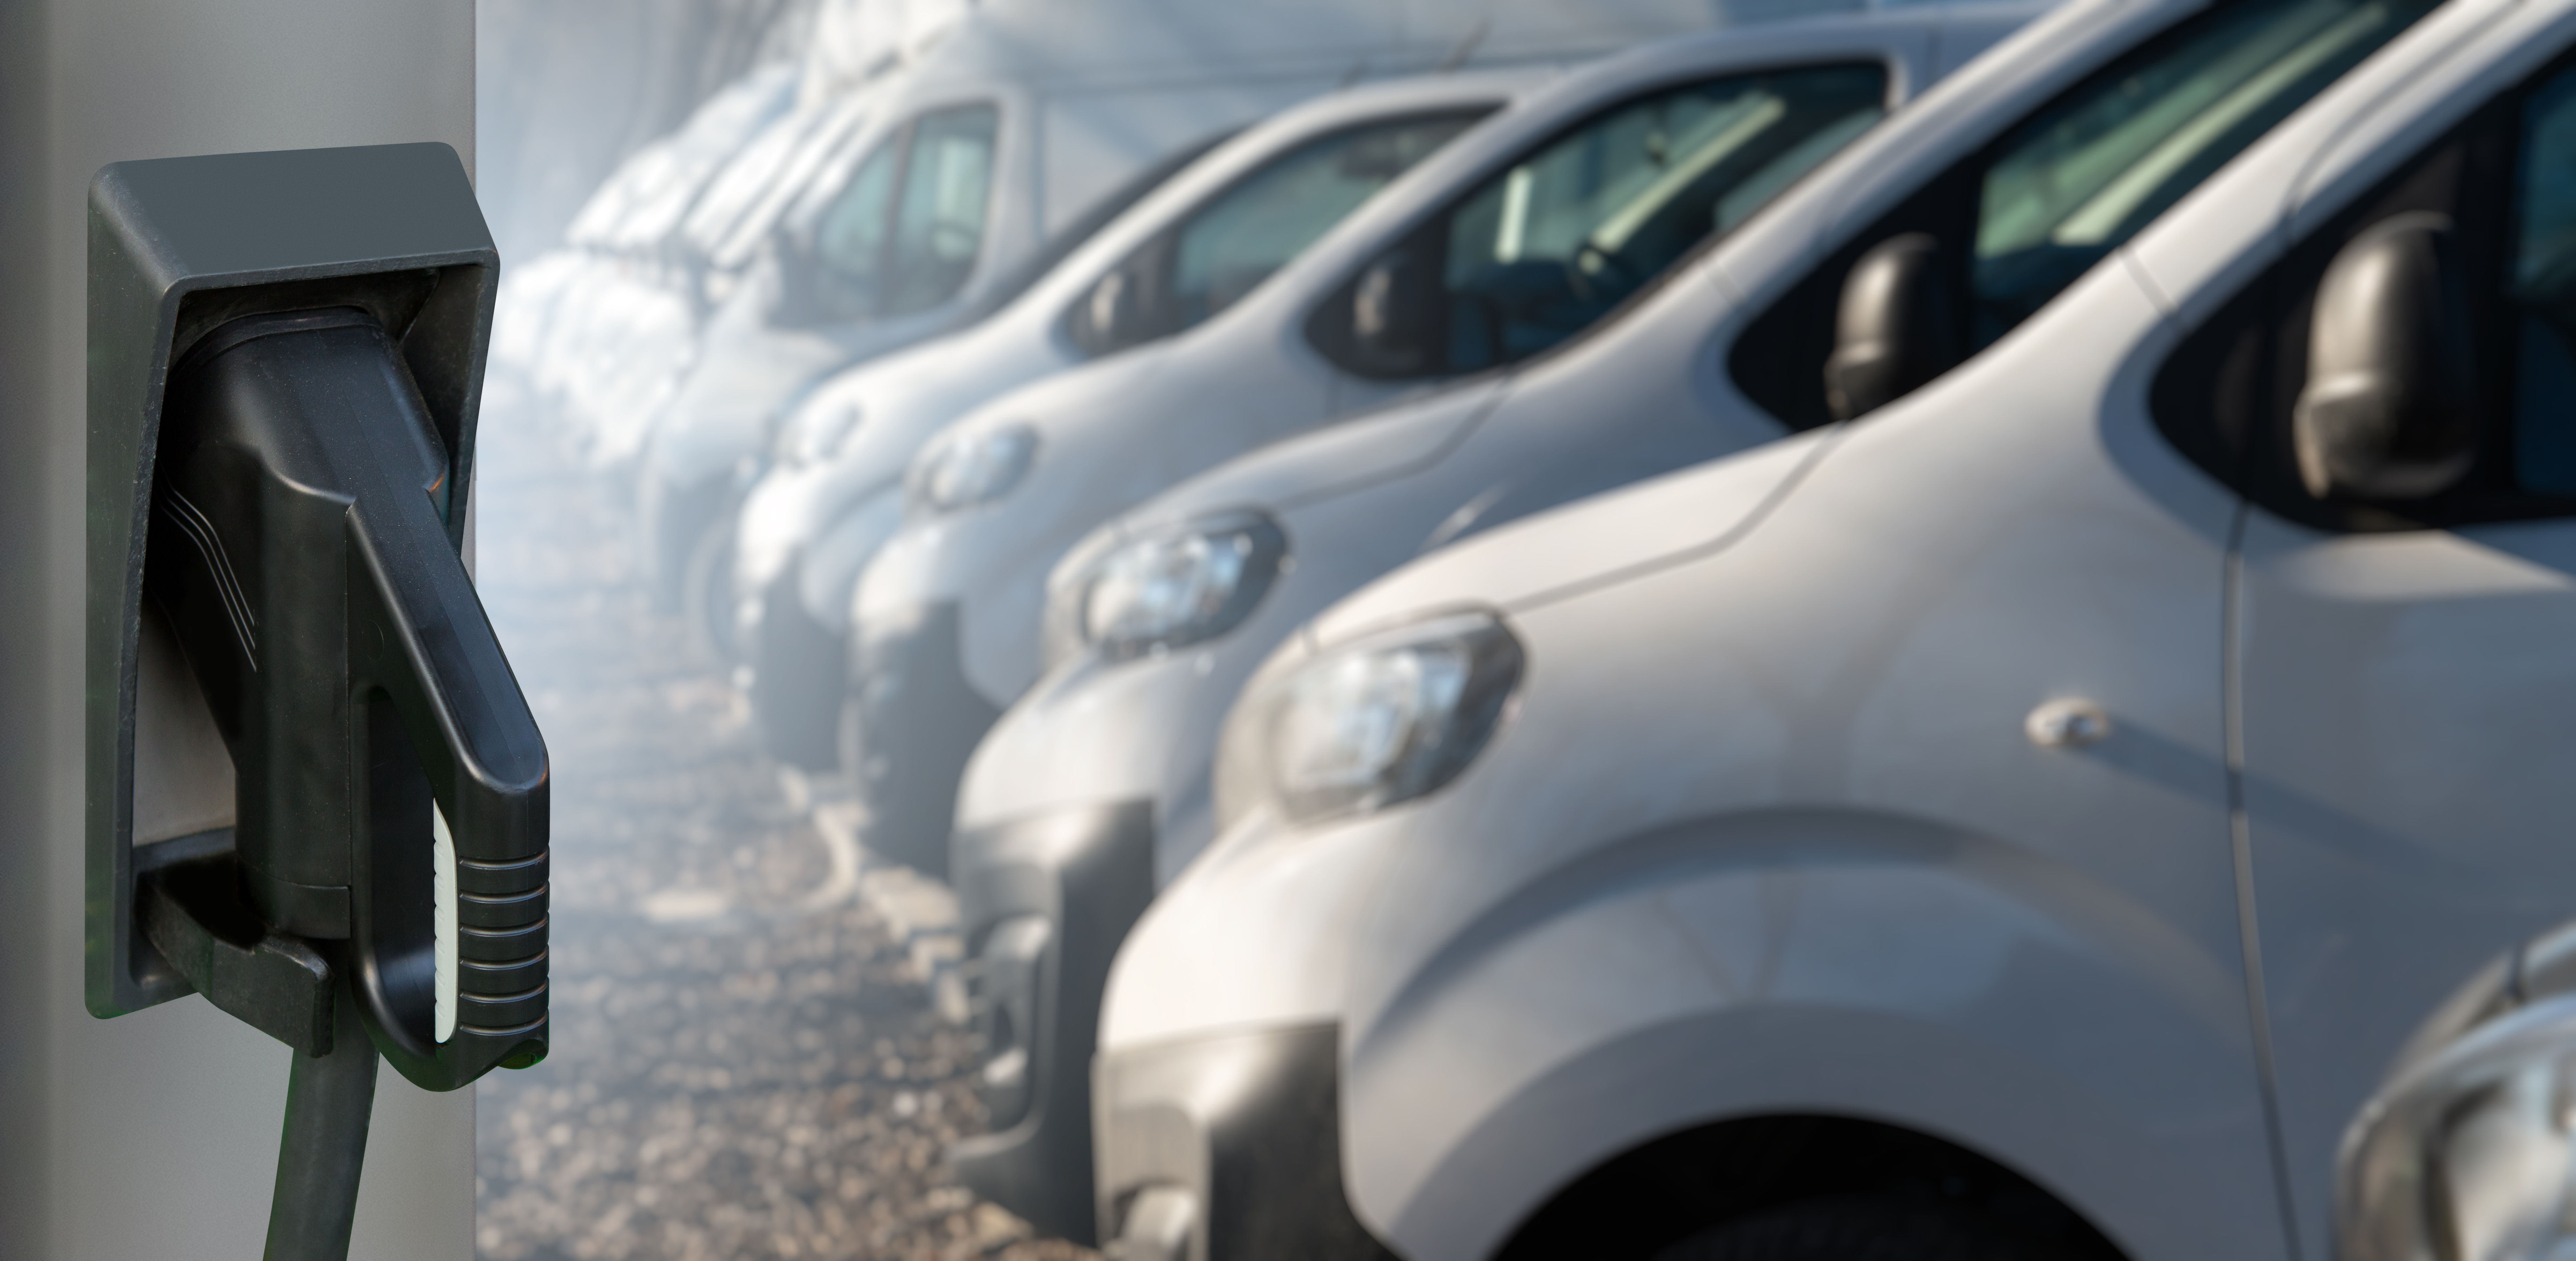 The Overlooked Benefits of Managed Charging for EV Fleets